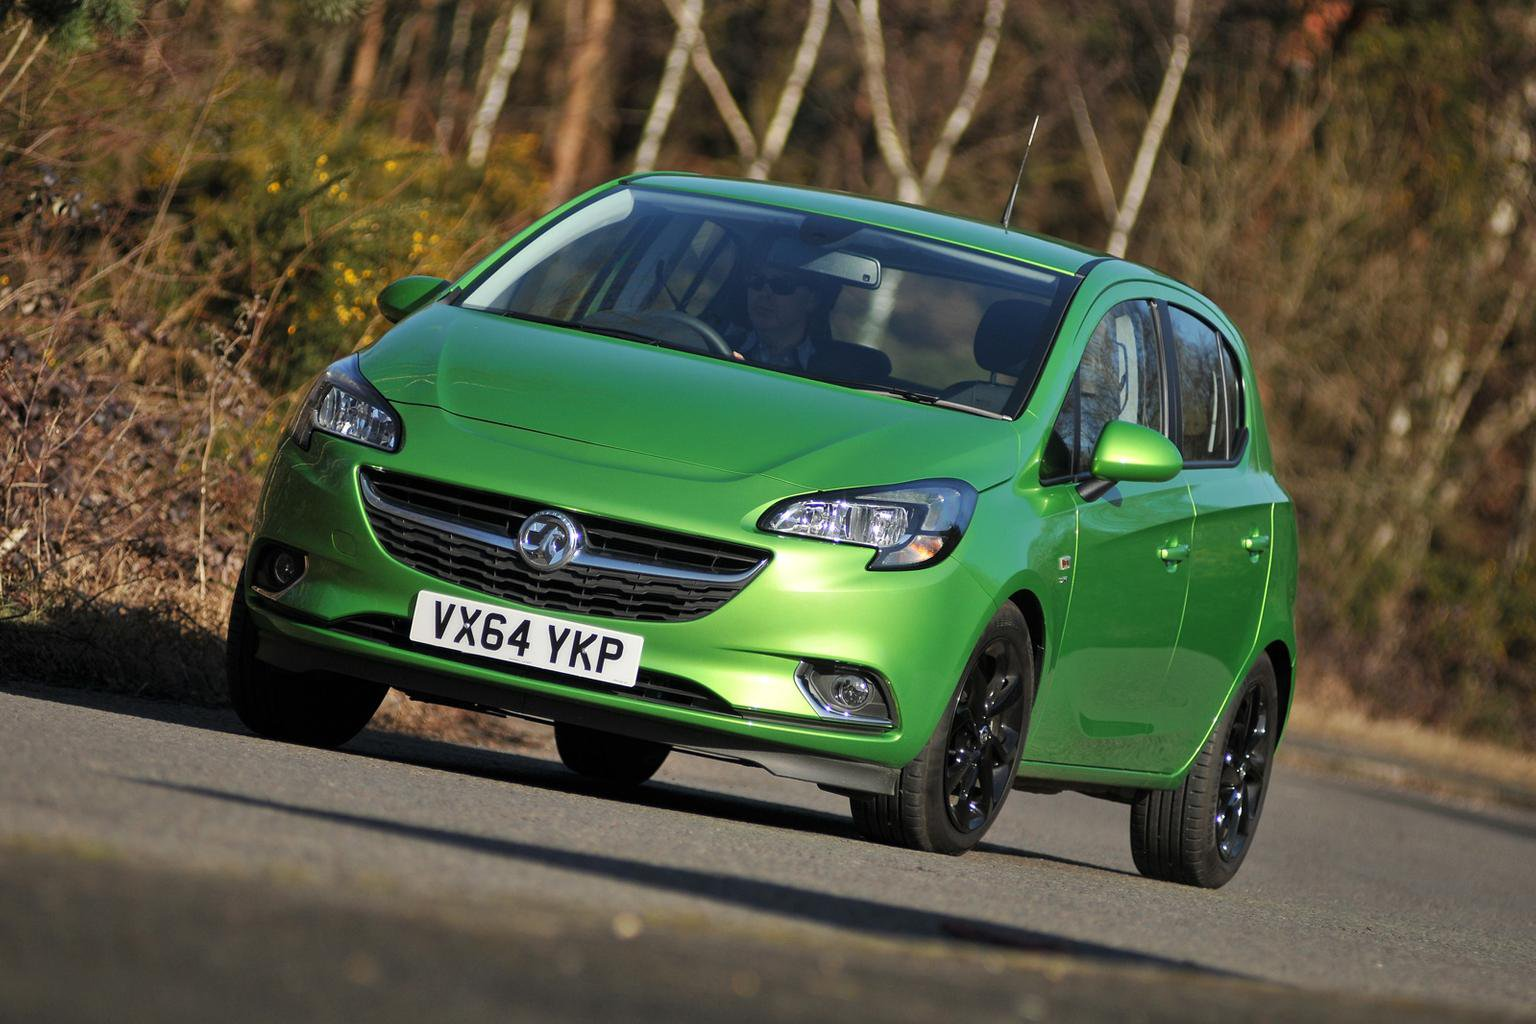 Vauxhall re-introduces scrappage scheme